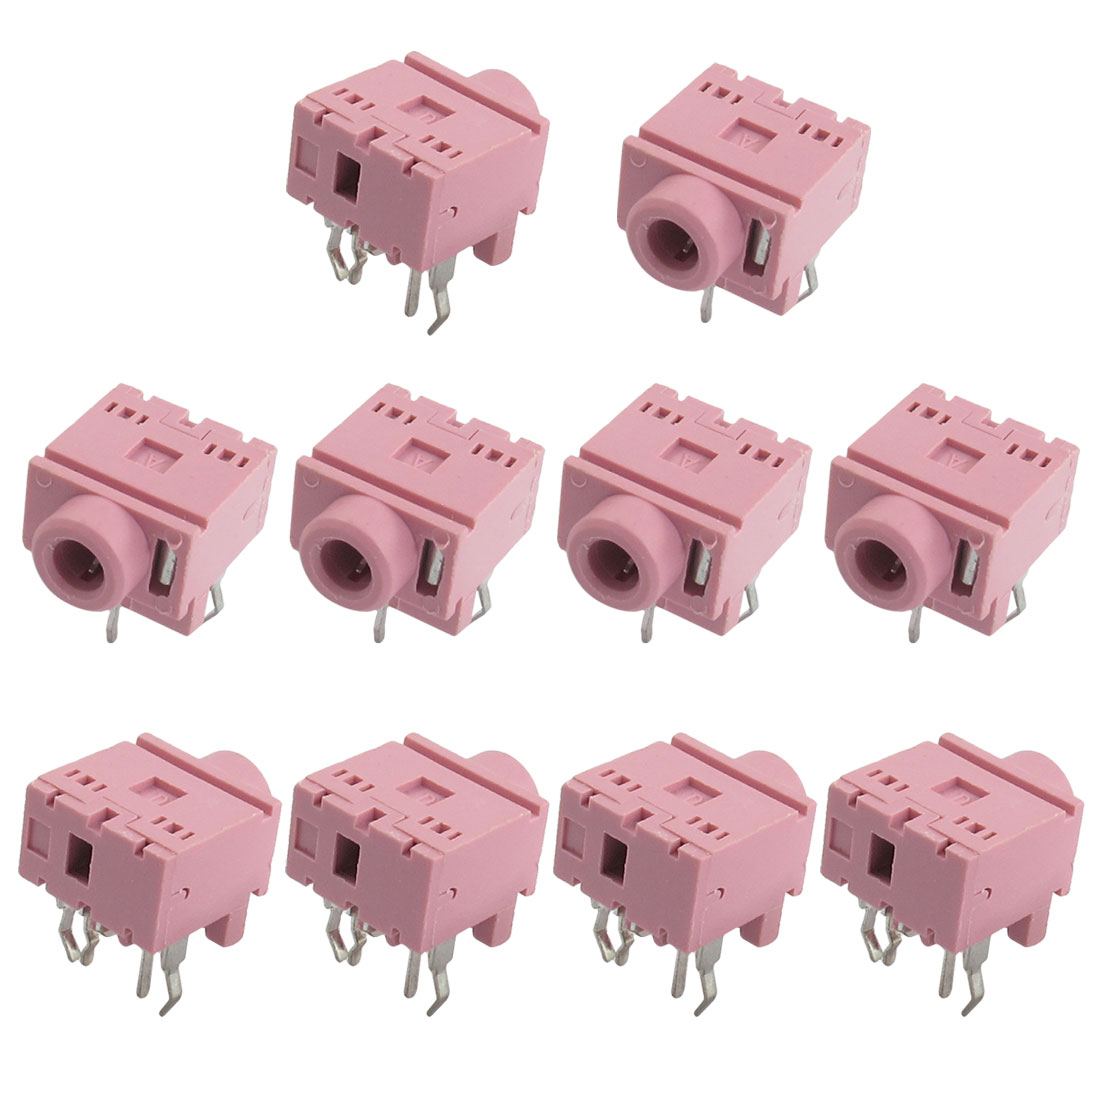 10 Pcs 5 Pin 3.5mm Stereo Jack Socket PCB Mount Connector